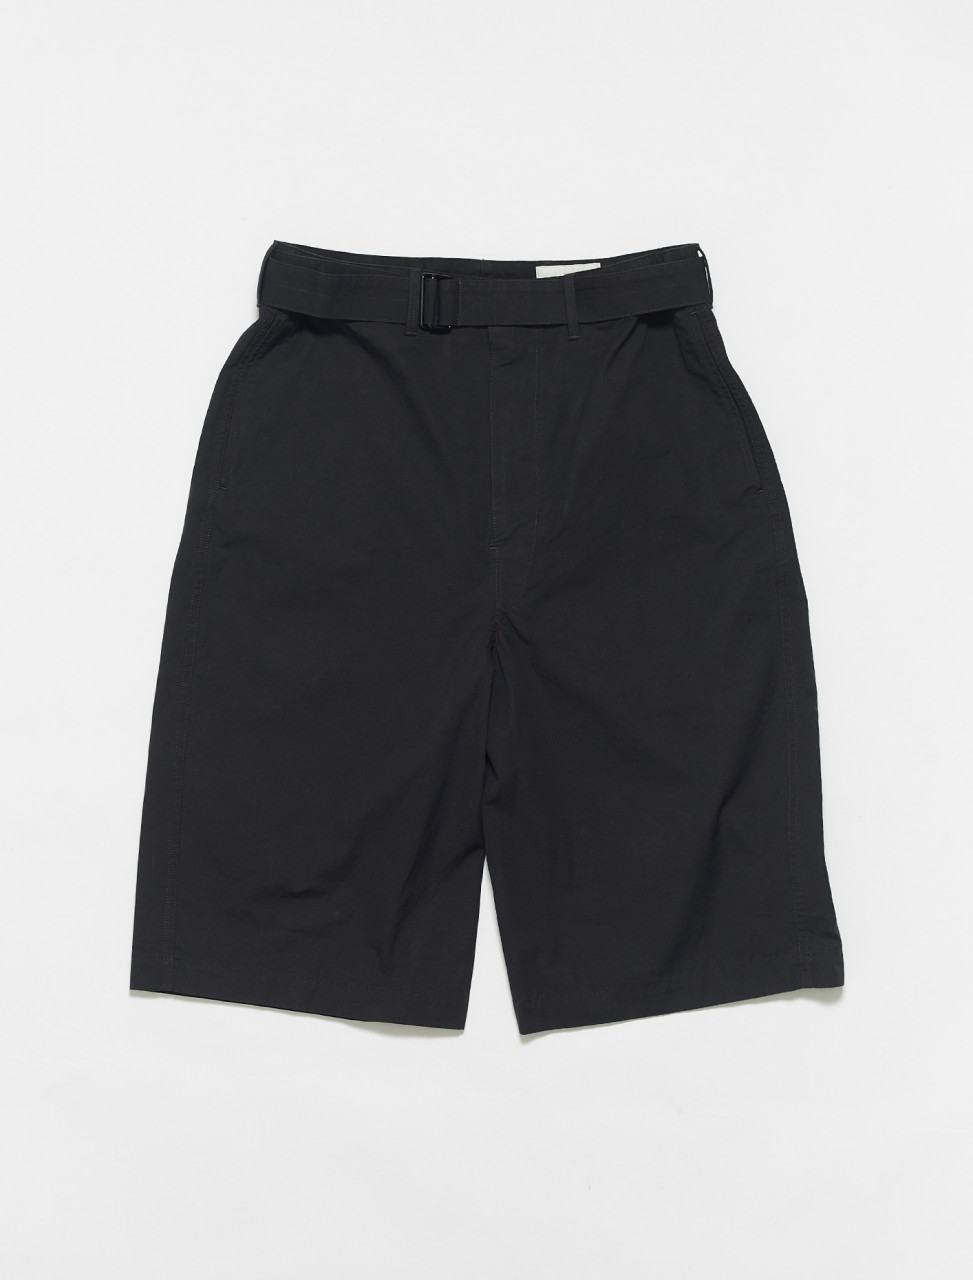 X-211-PA170-LF575-999 LEMAIRE BELTED SHORTS IN BLACK